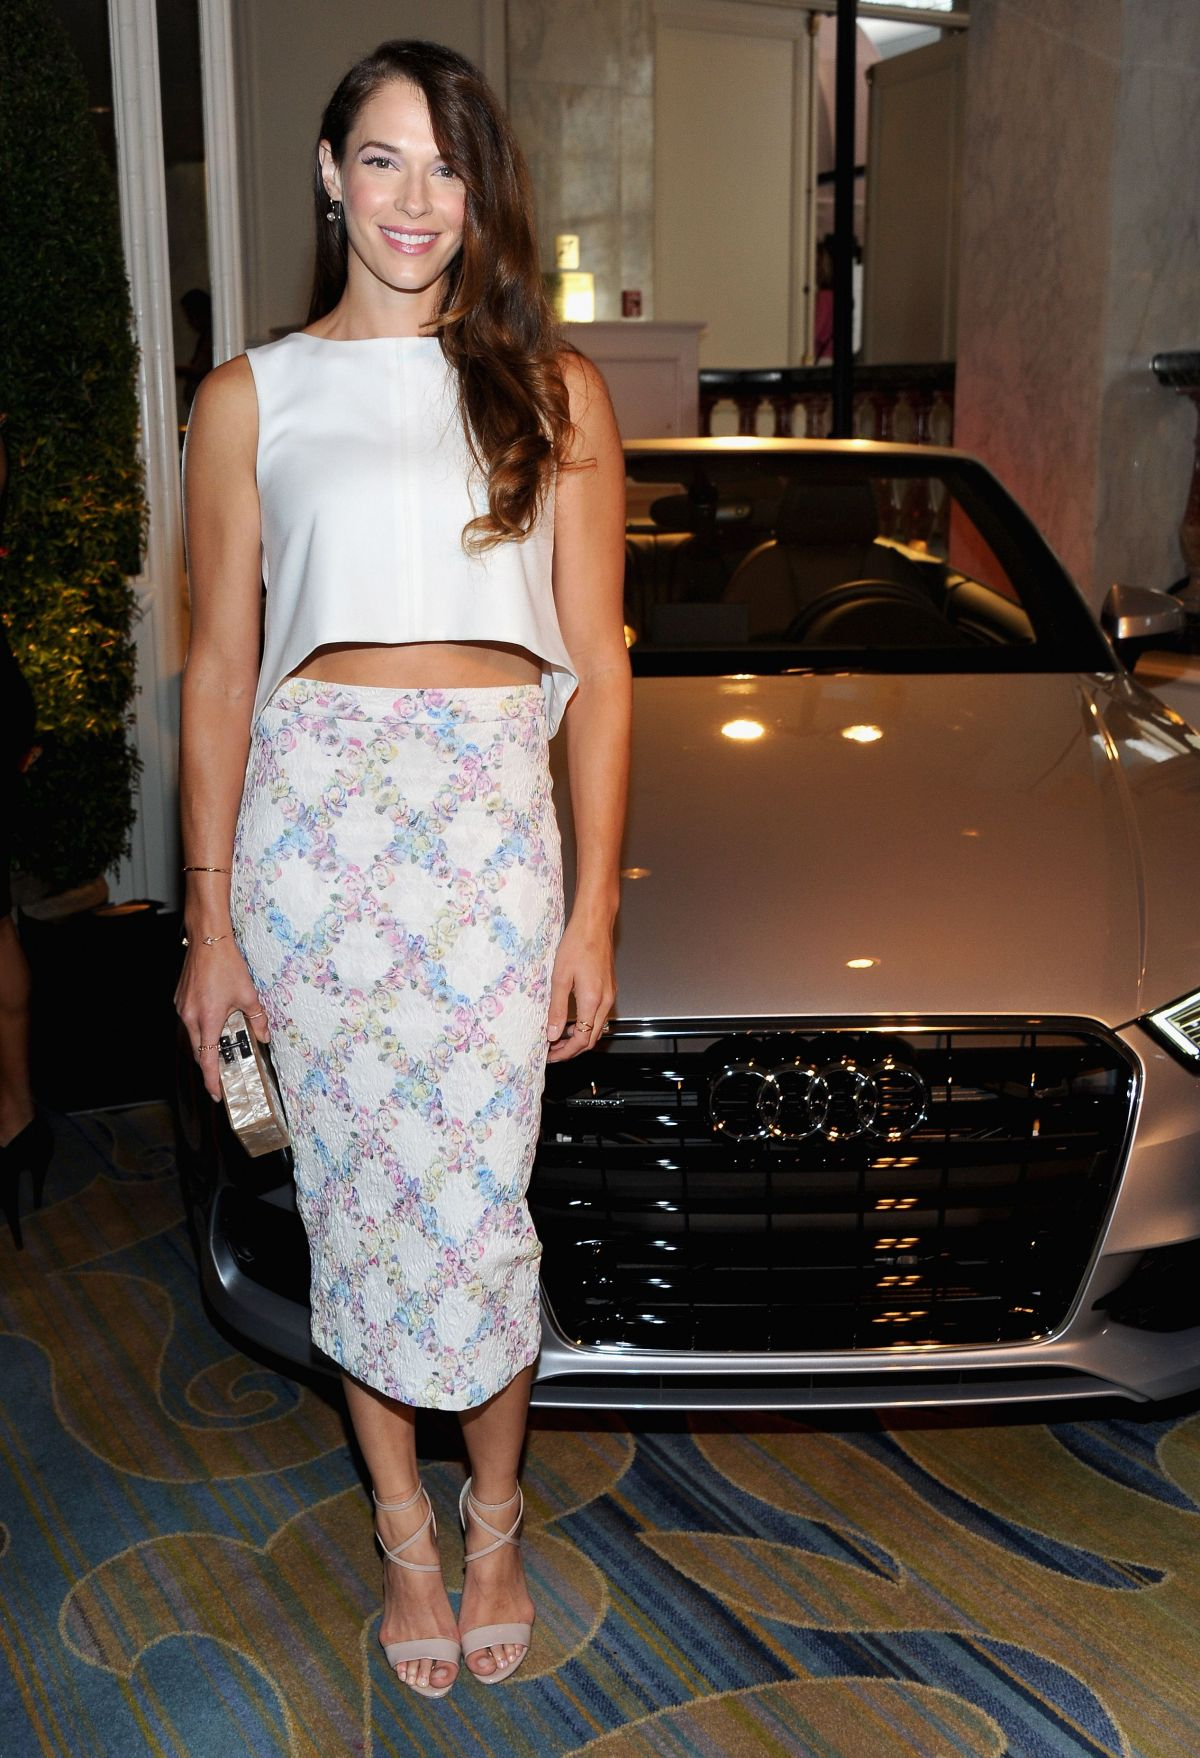 AMANDA RIGHETTI at 2014 Variety Power of Women in Beverly Hills